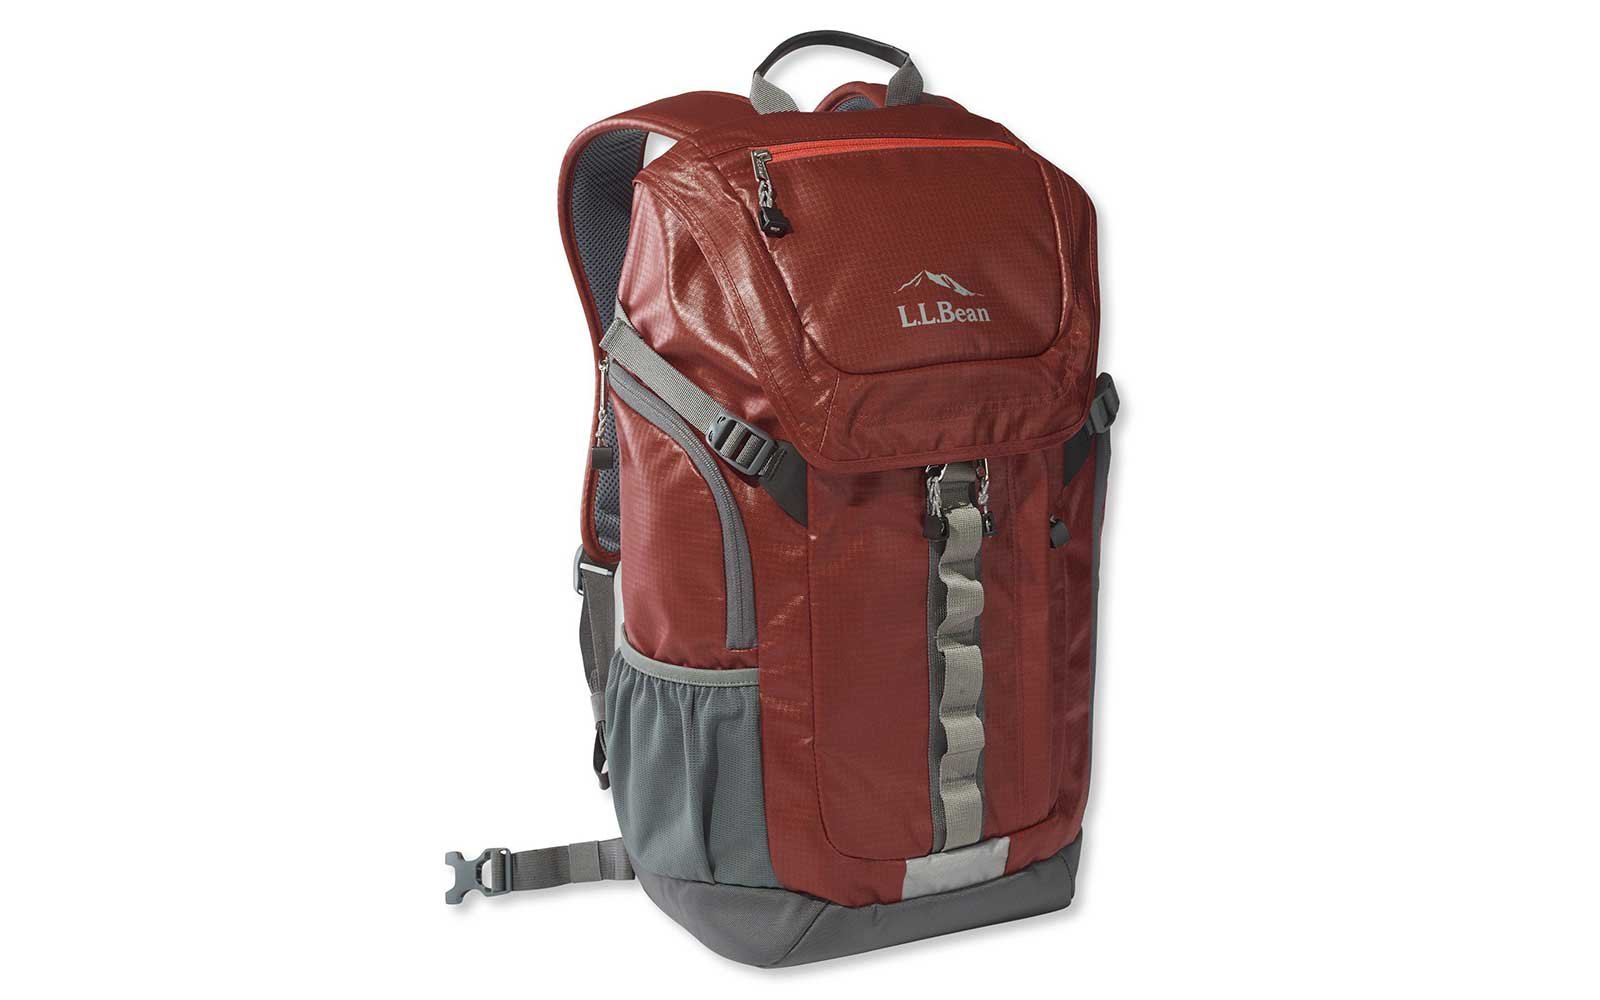 L.L. Bean burgundy waterproof backpack